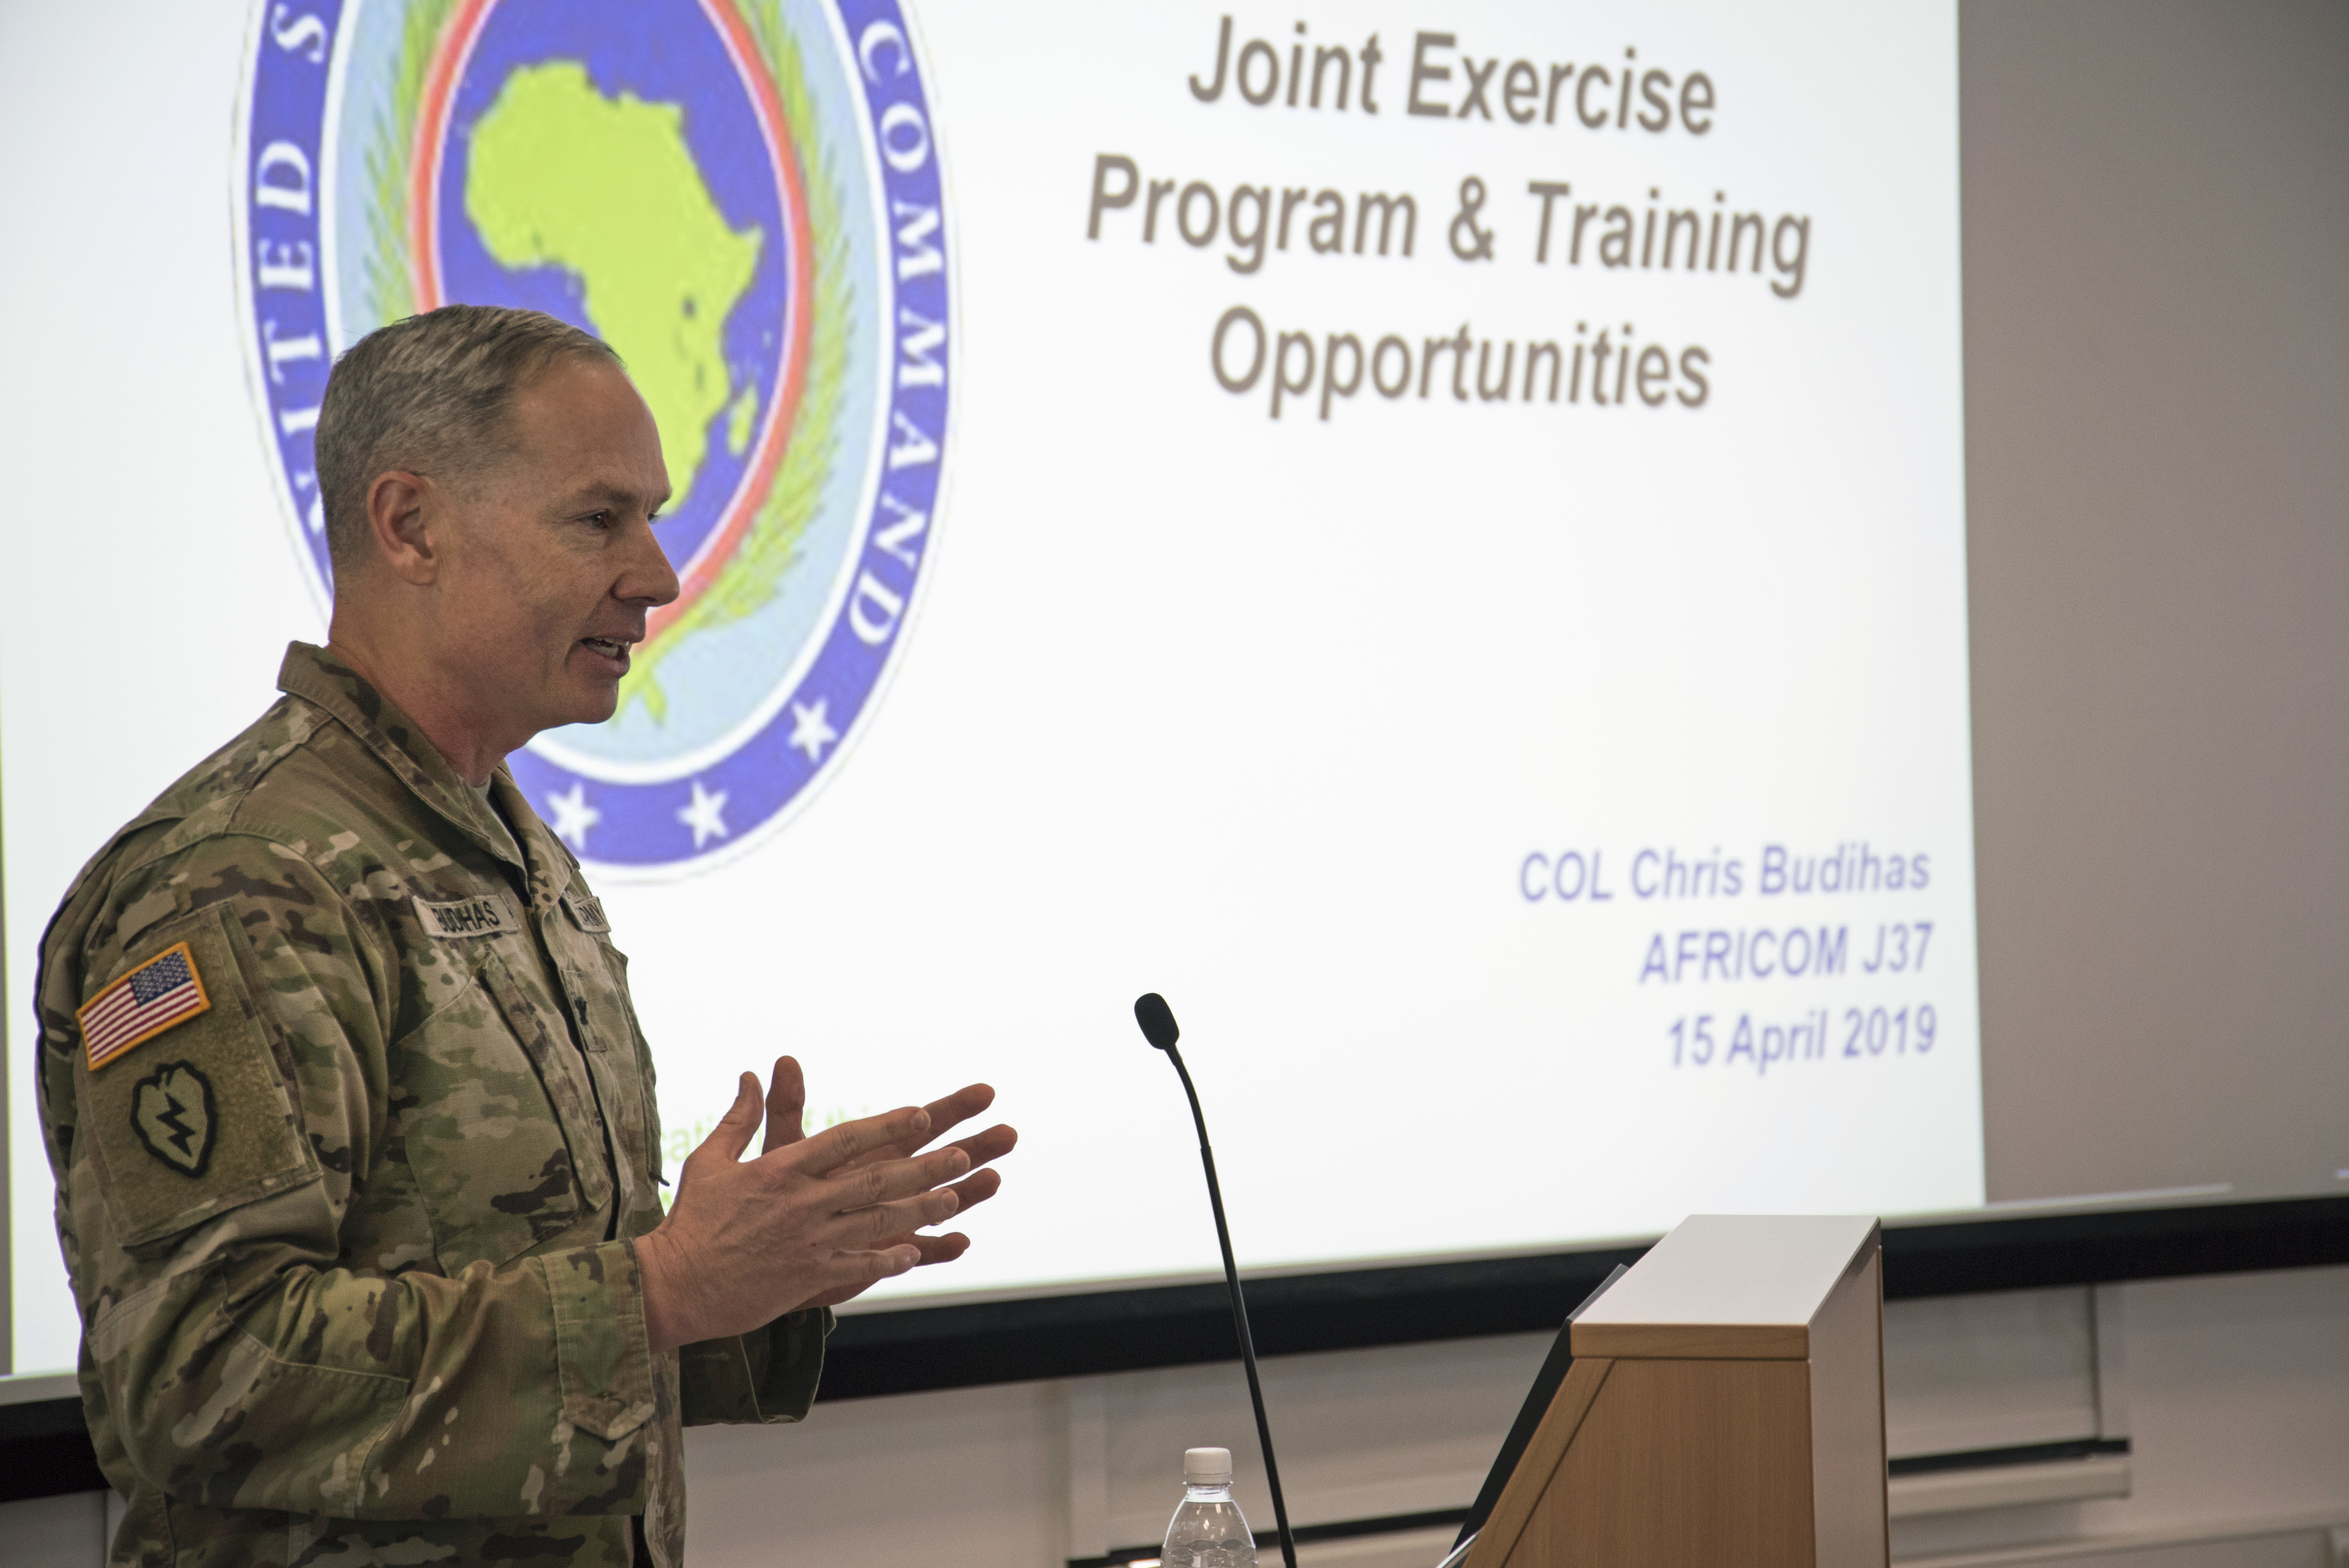 Army Col. Chris Budihas, chief of training, readiness and exercises at AFRICOM, speaks to attendees during The 2019 Adjutant General State Partnership Program Conference April 15 in Stuttgart, Germany. Budihas spoke about upcoming exercises and training opportunities for National Guard units and there partnering nations. (U.S. Navy photo by Mass Communication Specialist 1st Class Christopher Hurd/Released)